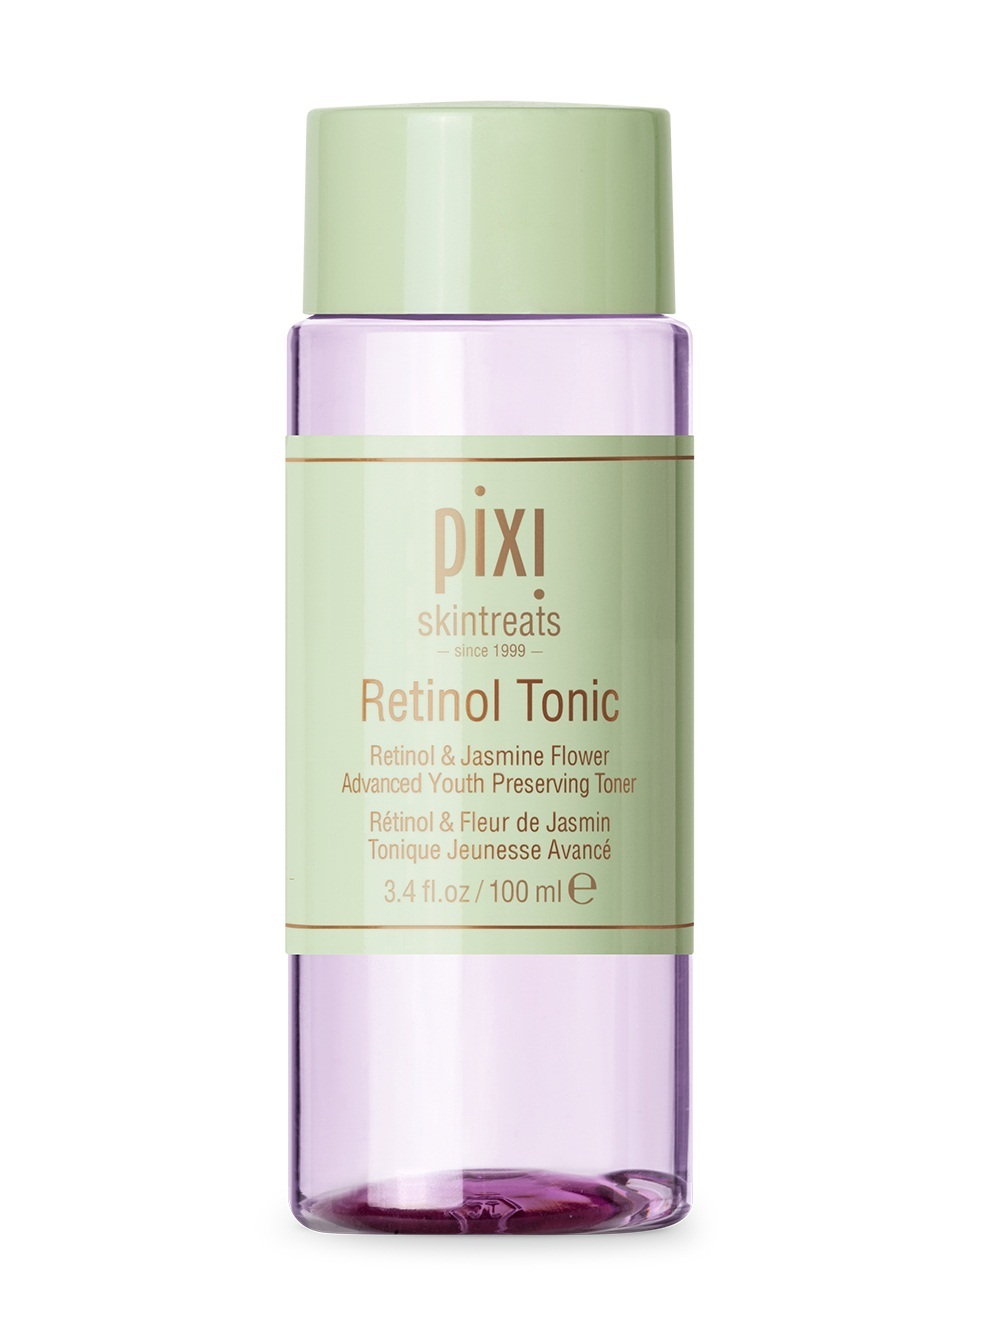 Pixi Retinol Tonic 100ml.jpg